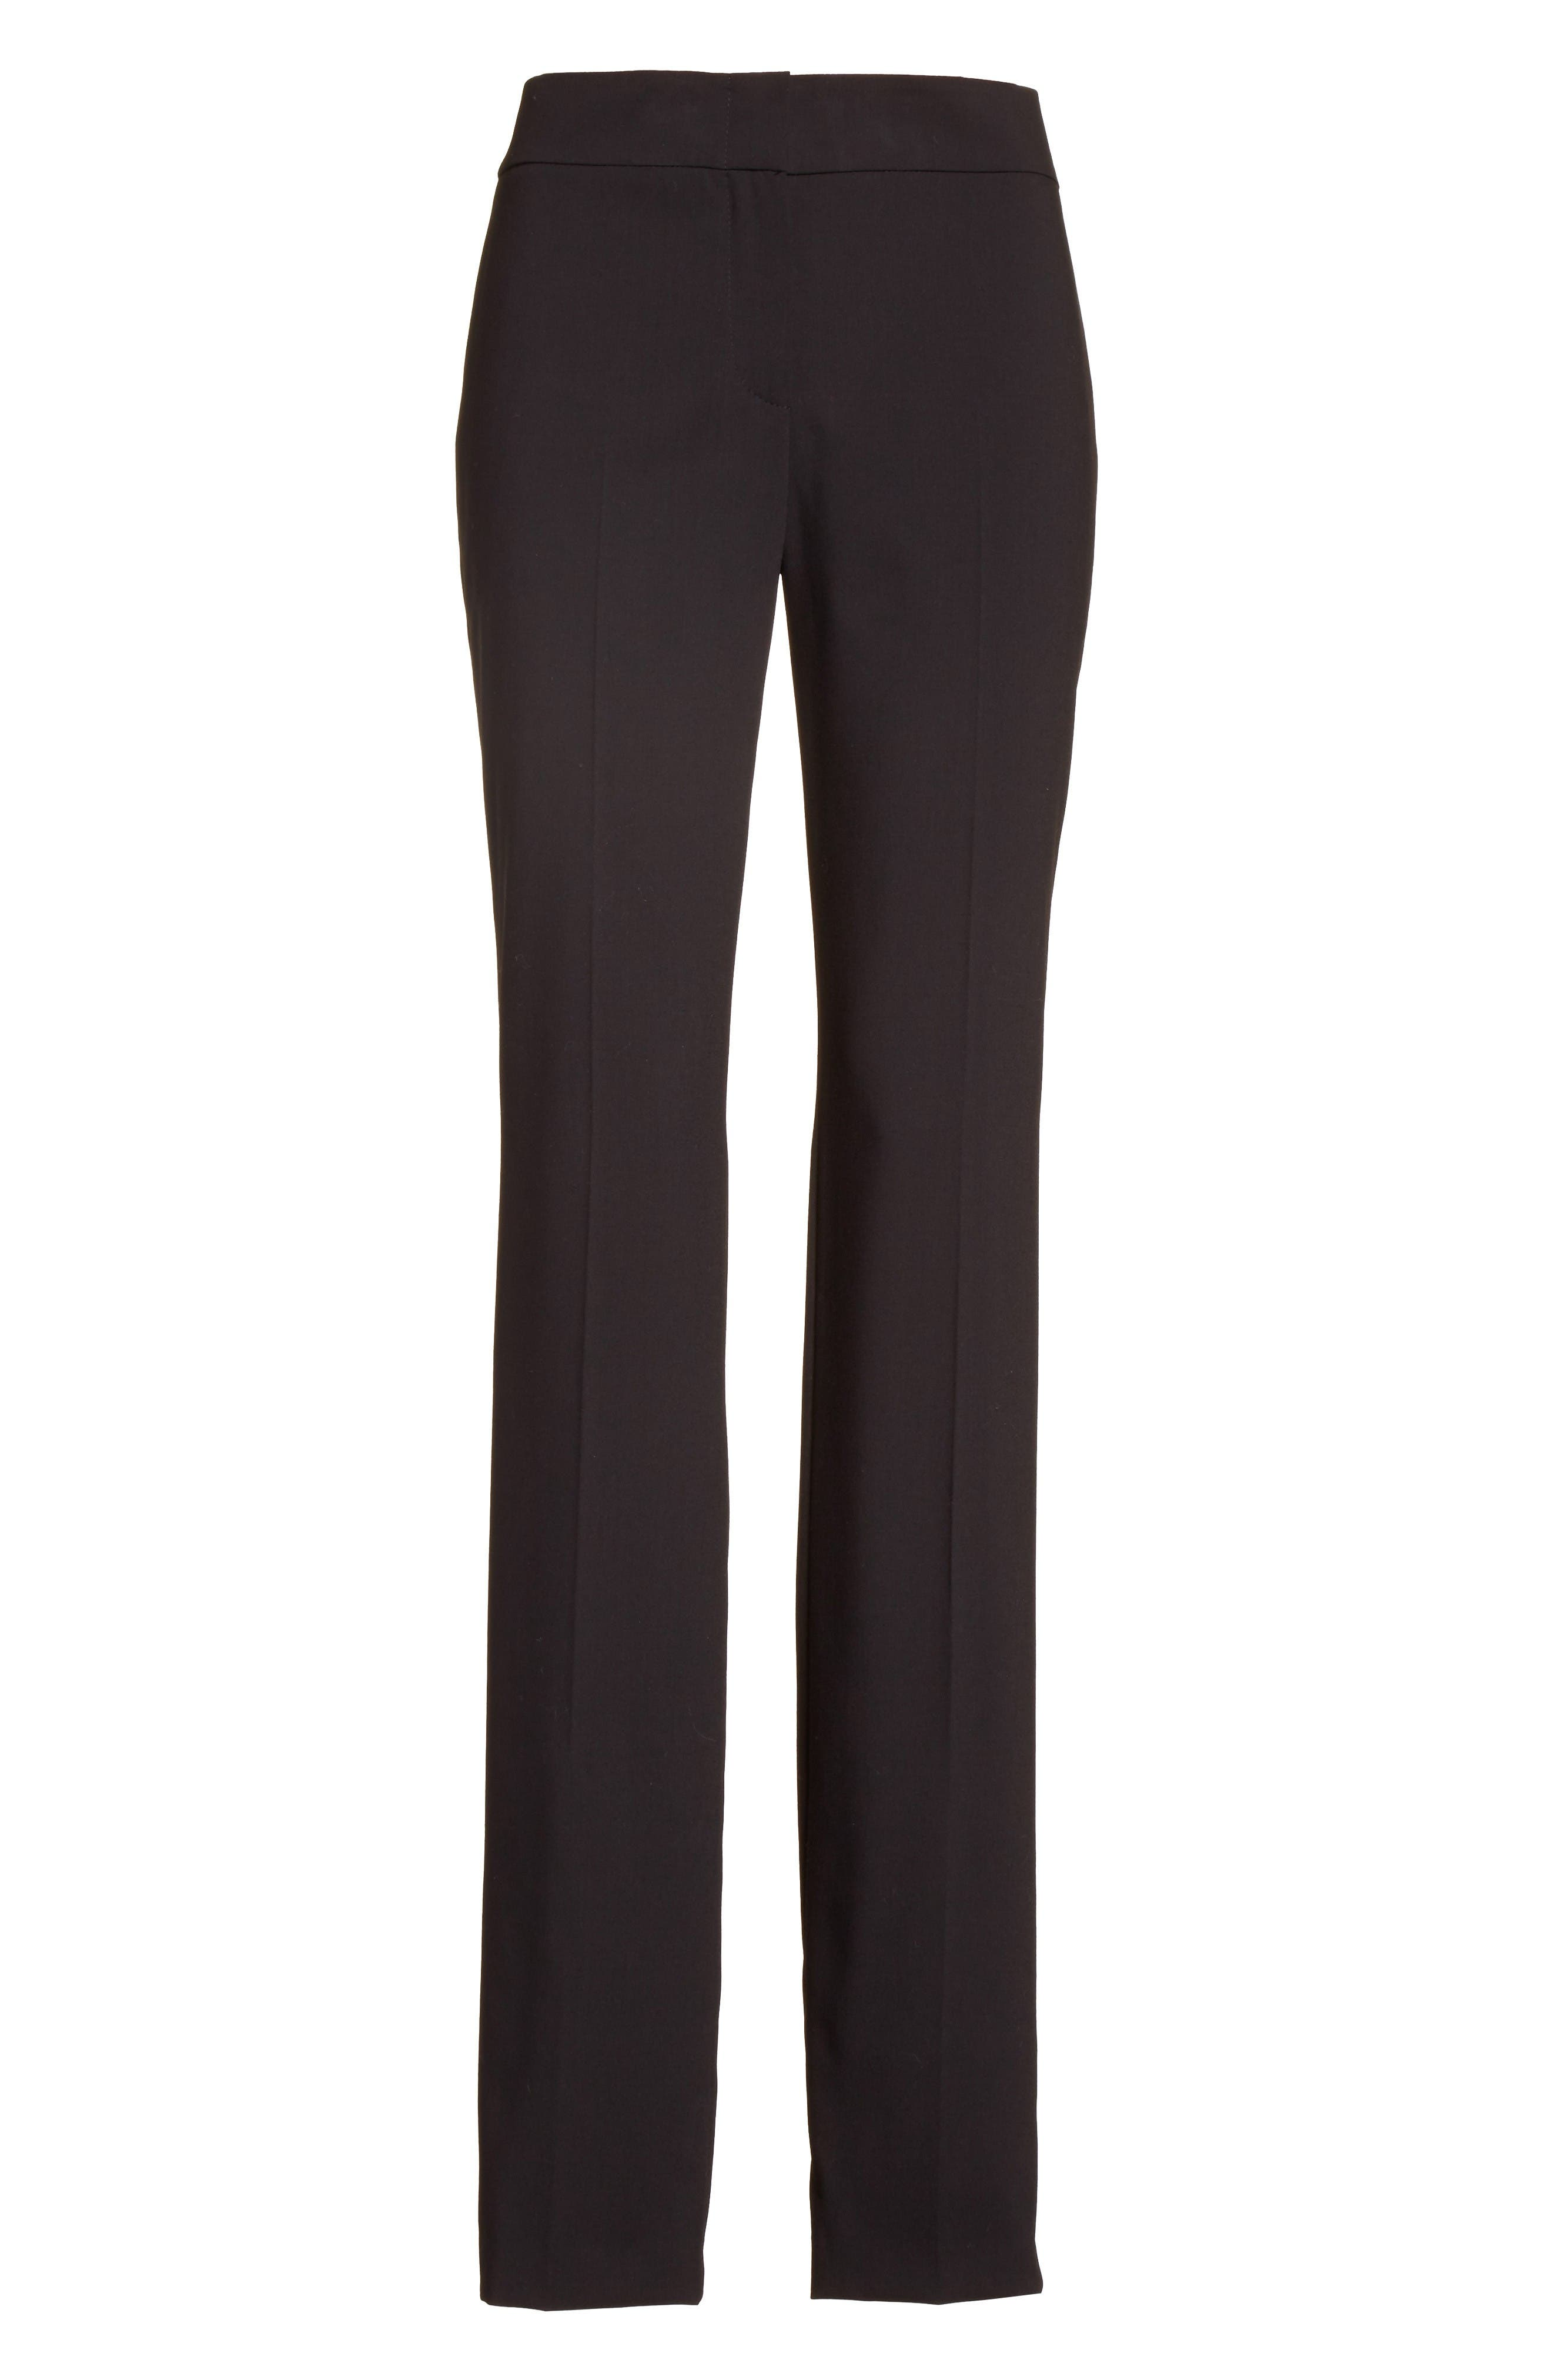 'Madison' Straight Leg Wool Trousers,                             Alternate thumbnail 6, color,                             Black